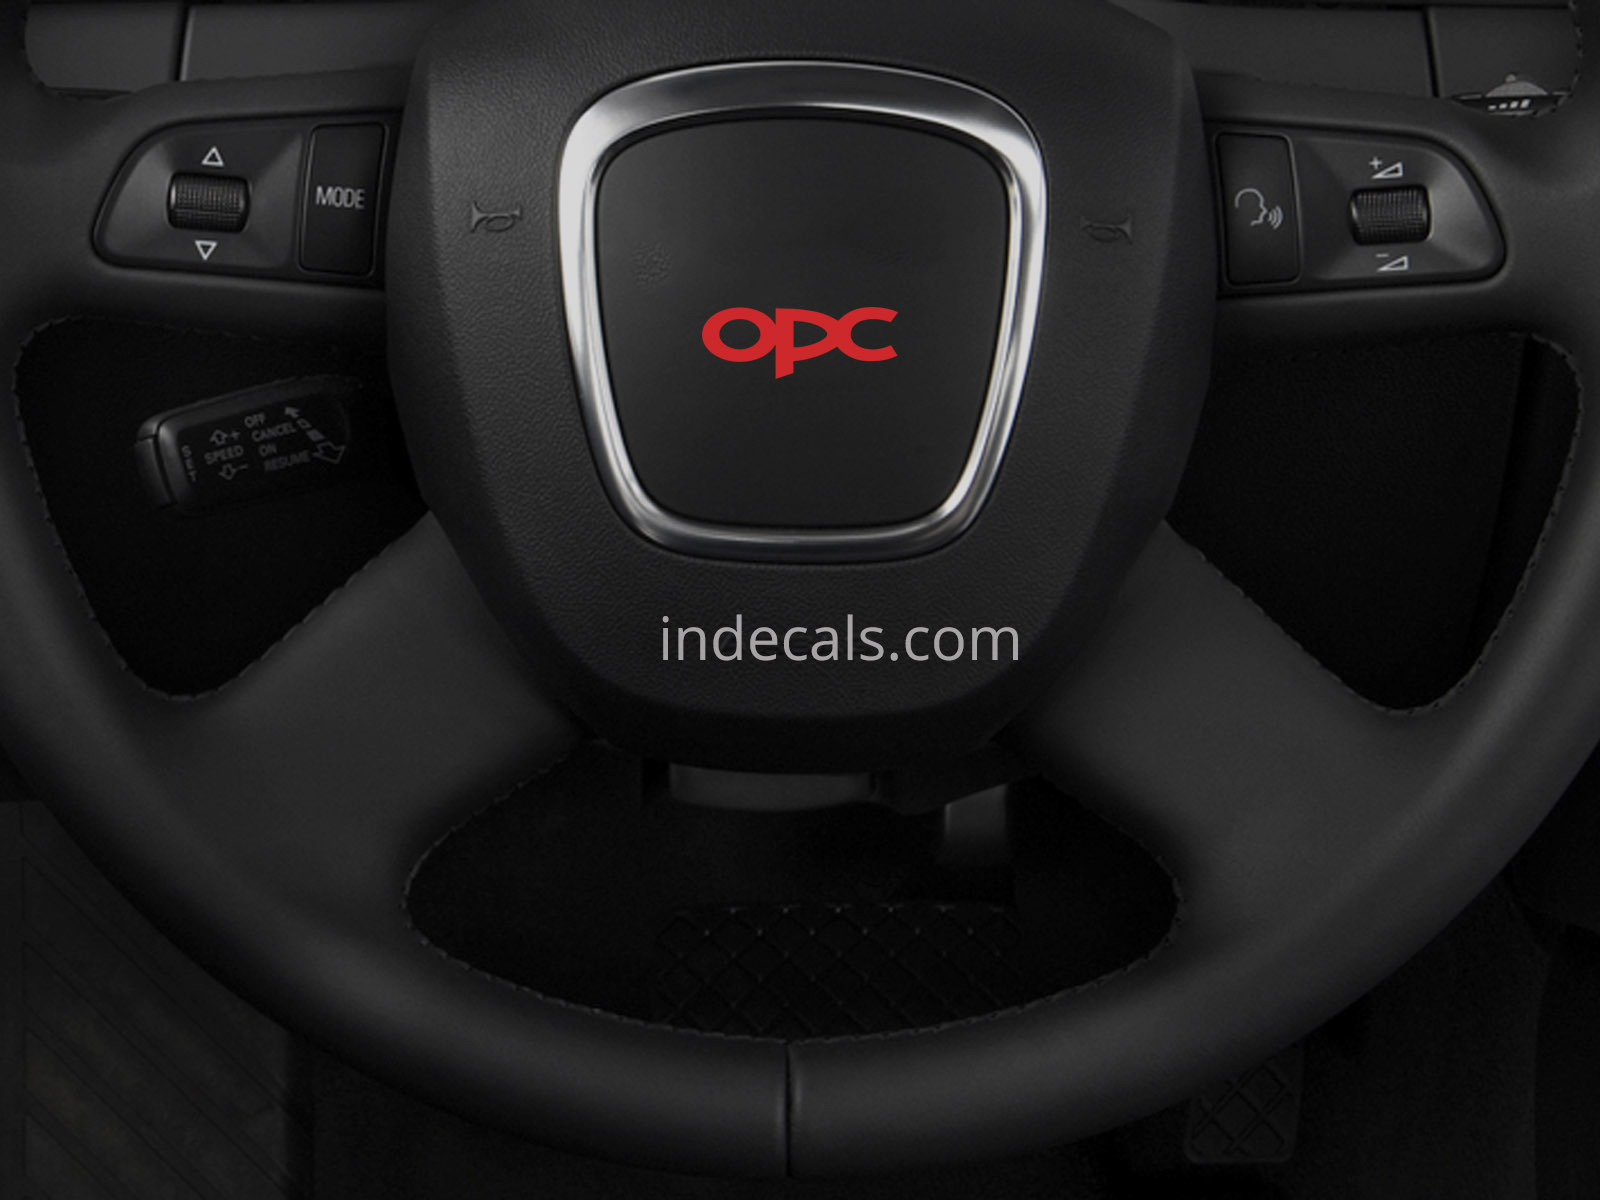 3 x Opel OPC Stickers for Steering Wheel - Red